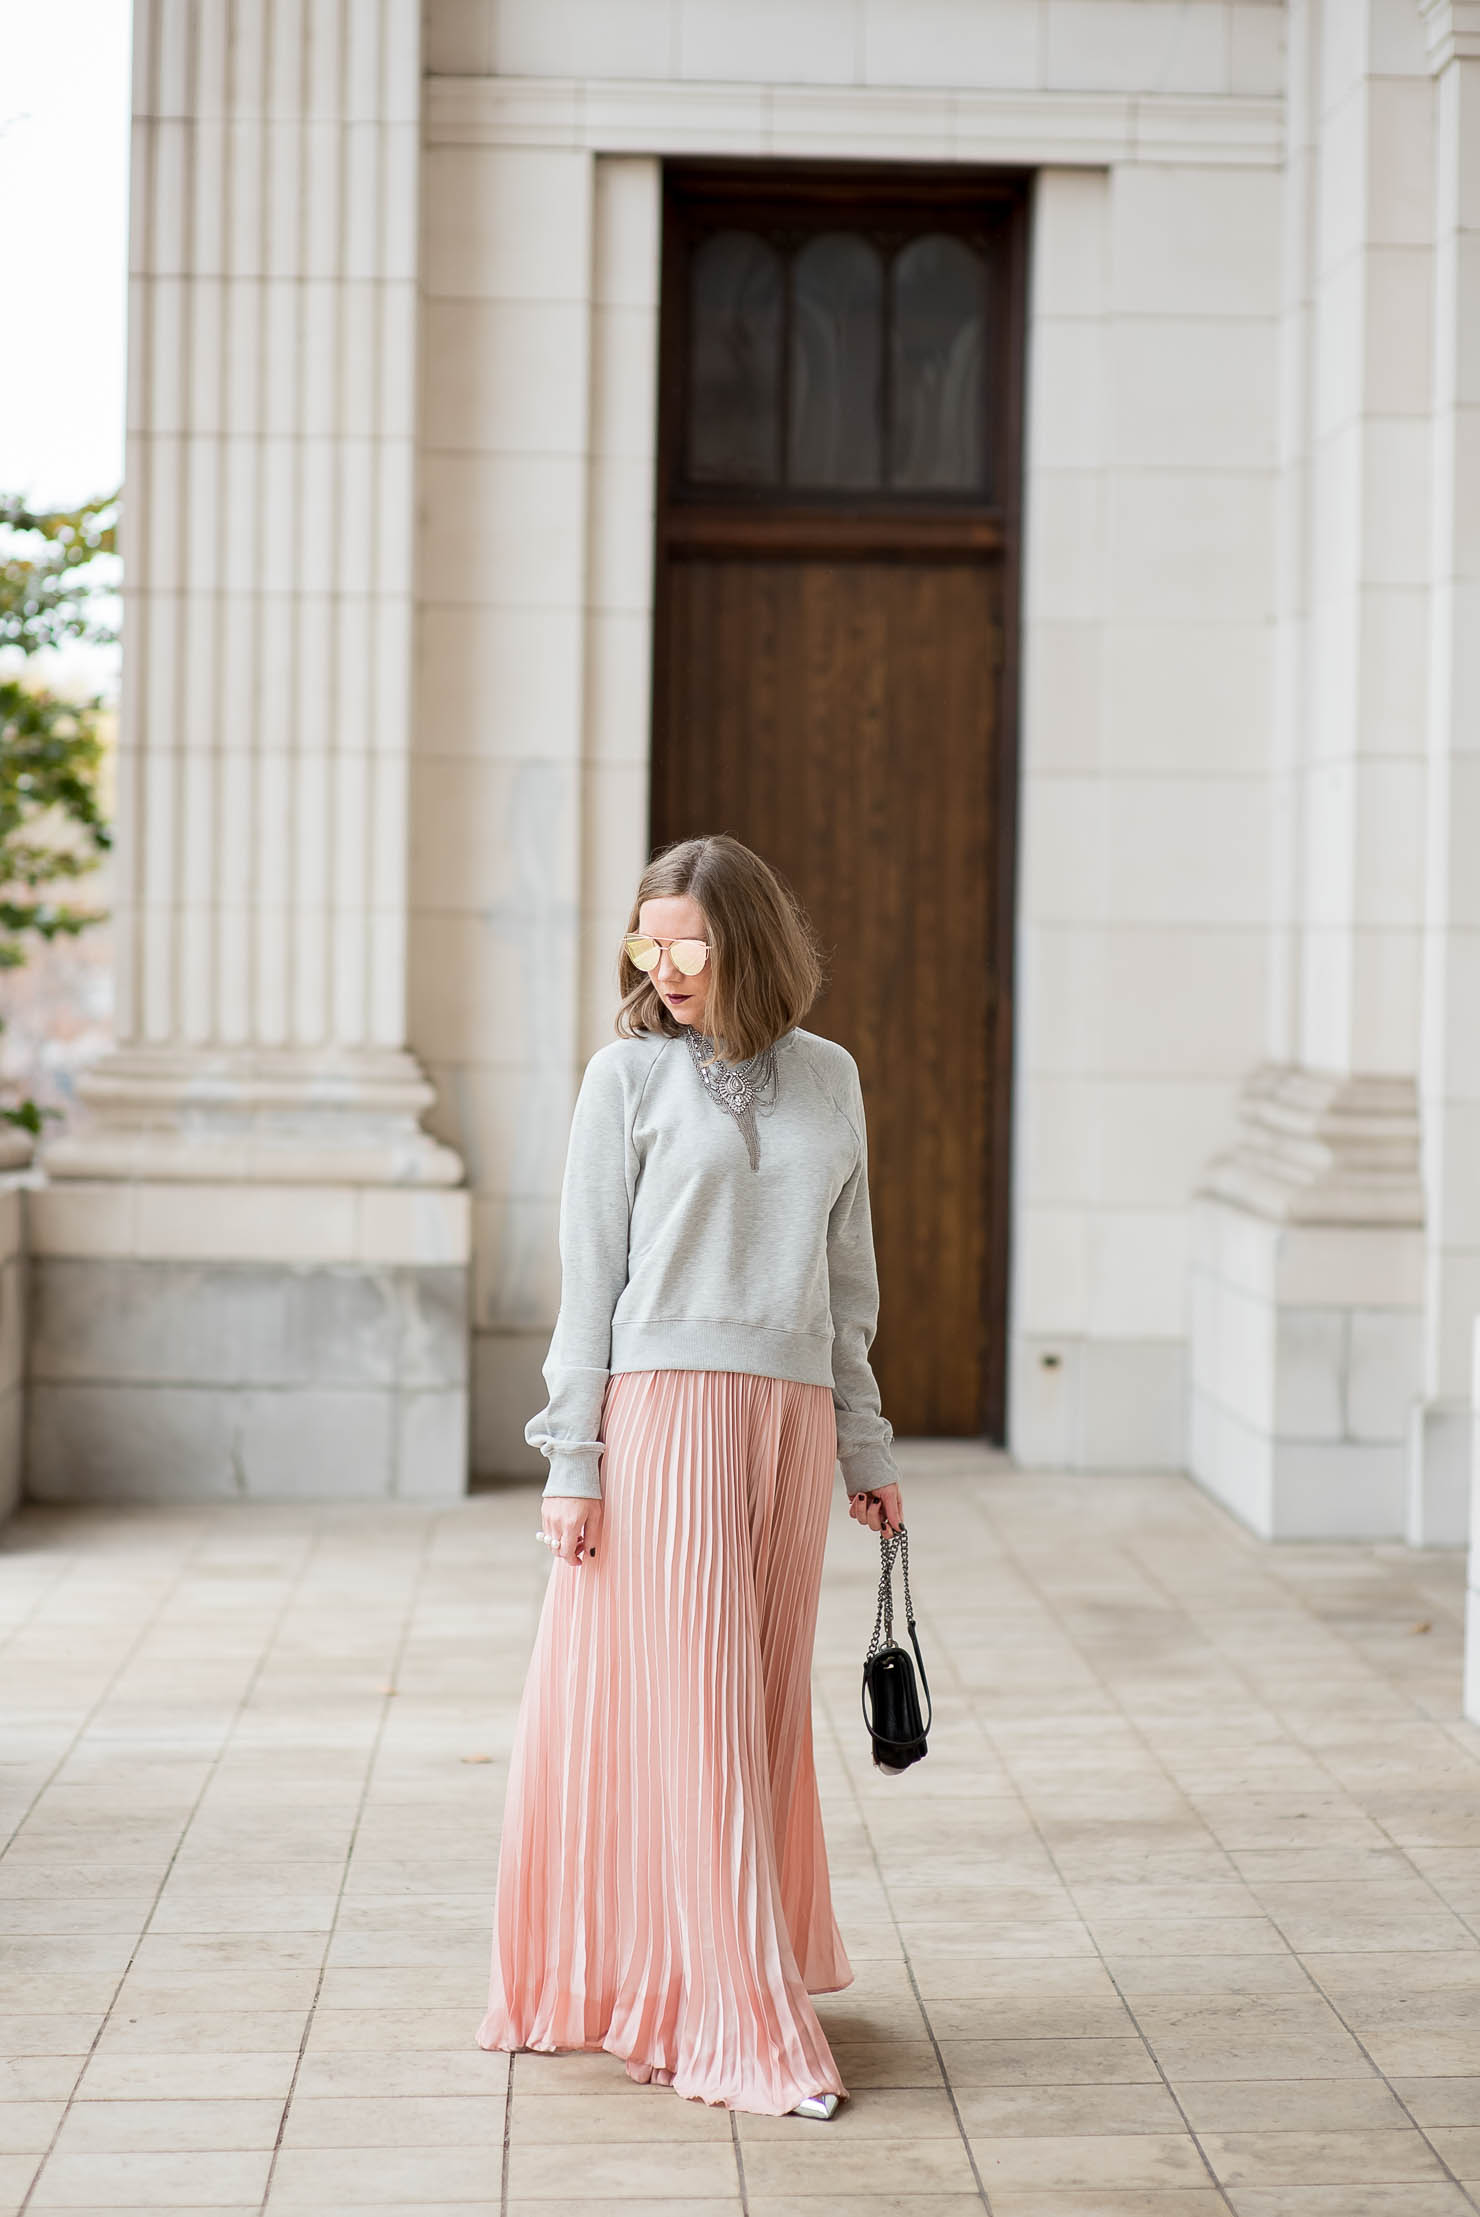 a-dramatic-pink-skirt-for-the-holidays-christmas-outfit-cozy-glam-shein-blush-pleated-maxi-skirt-pink-and-silver-holiday-outfit